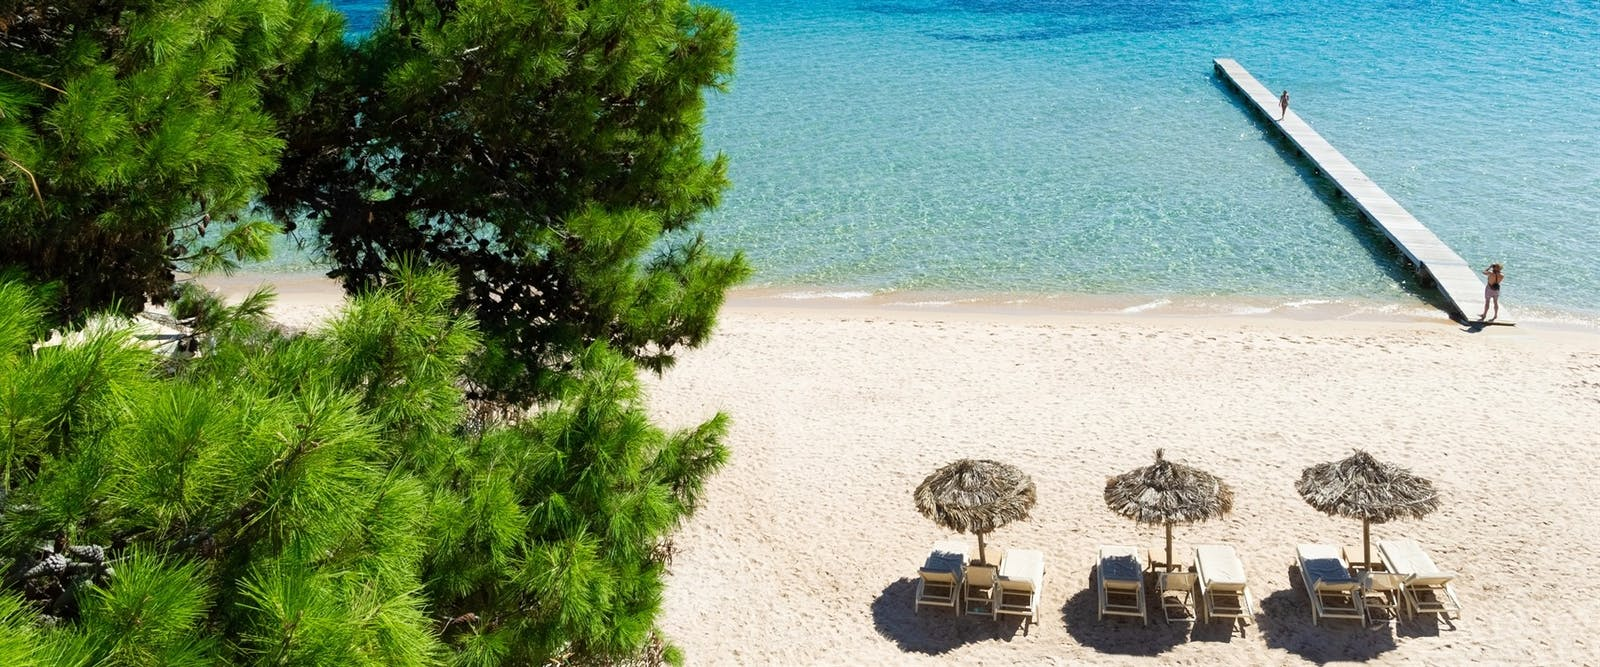 Soft Sand Beach at Forte Village Resort, South Sardinia, Italy